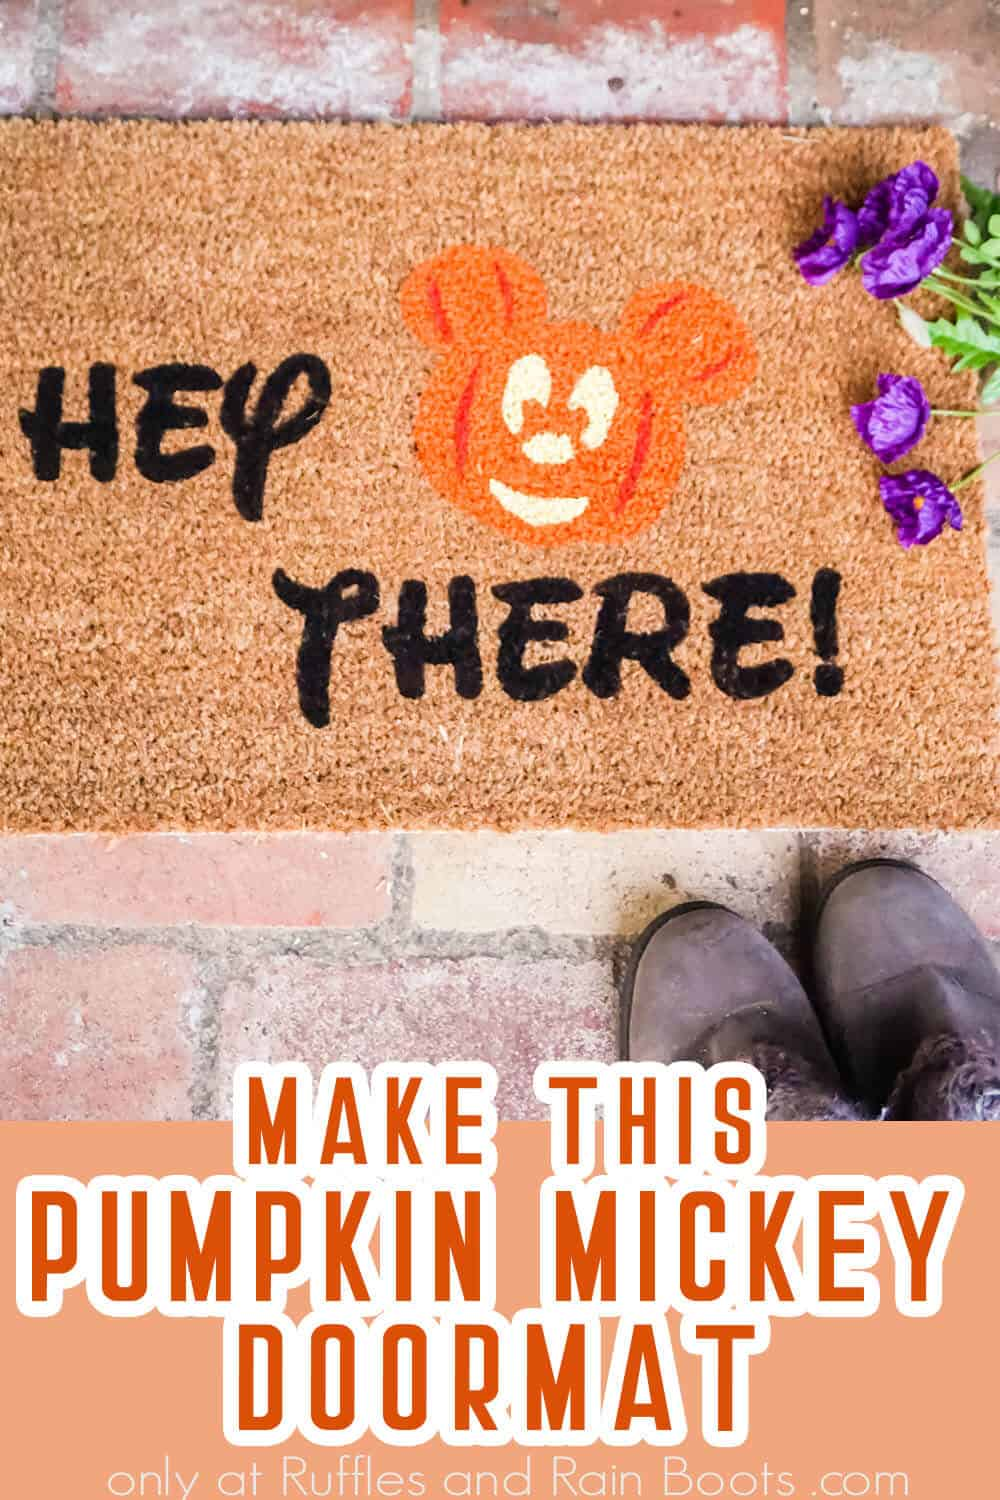 how to make a doormat with cricut for a mickey halloween doormat with text which reads make this pumpkin mickey doormat